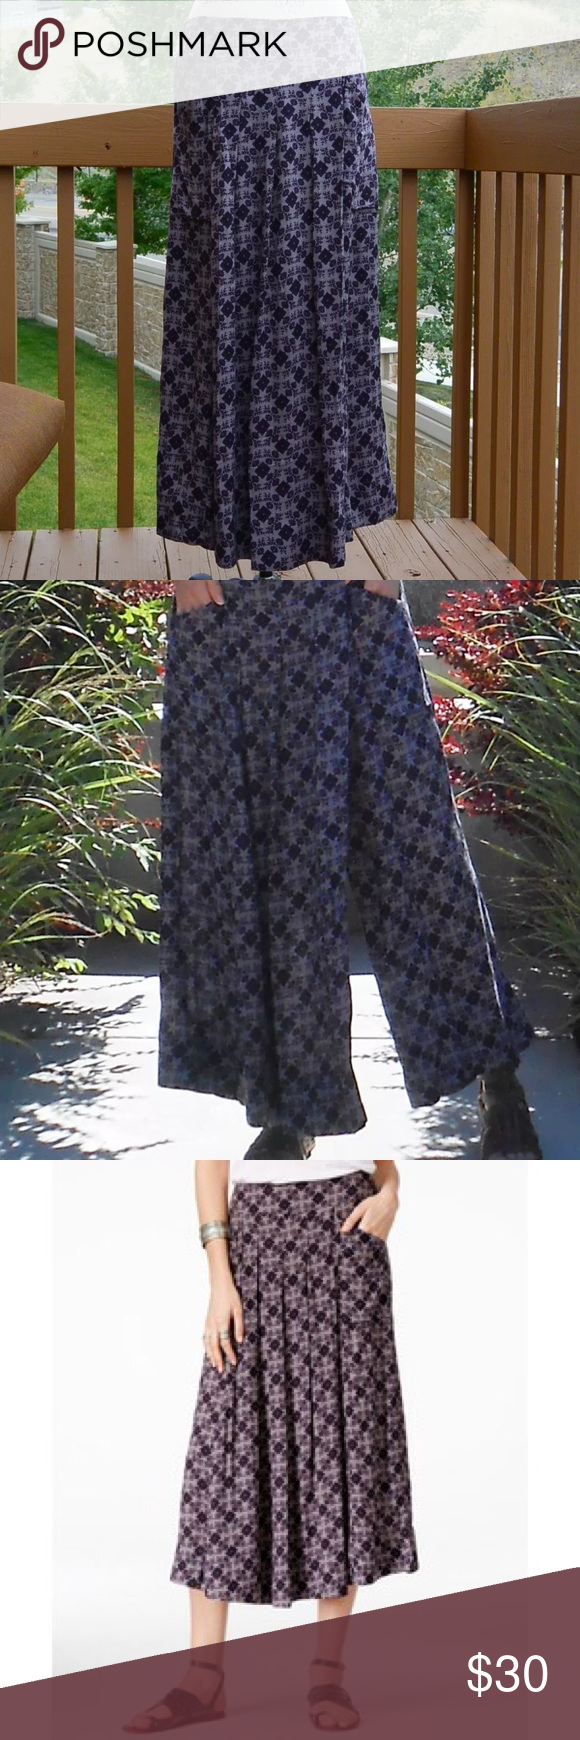 """FP swept away culottes Very unique! These """"pants"""" look like a maxi skirt from the front but are actually flowy wide leg culottes. Pull on style. I always received compliments on these. Worn 3x. Free People Pants"""